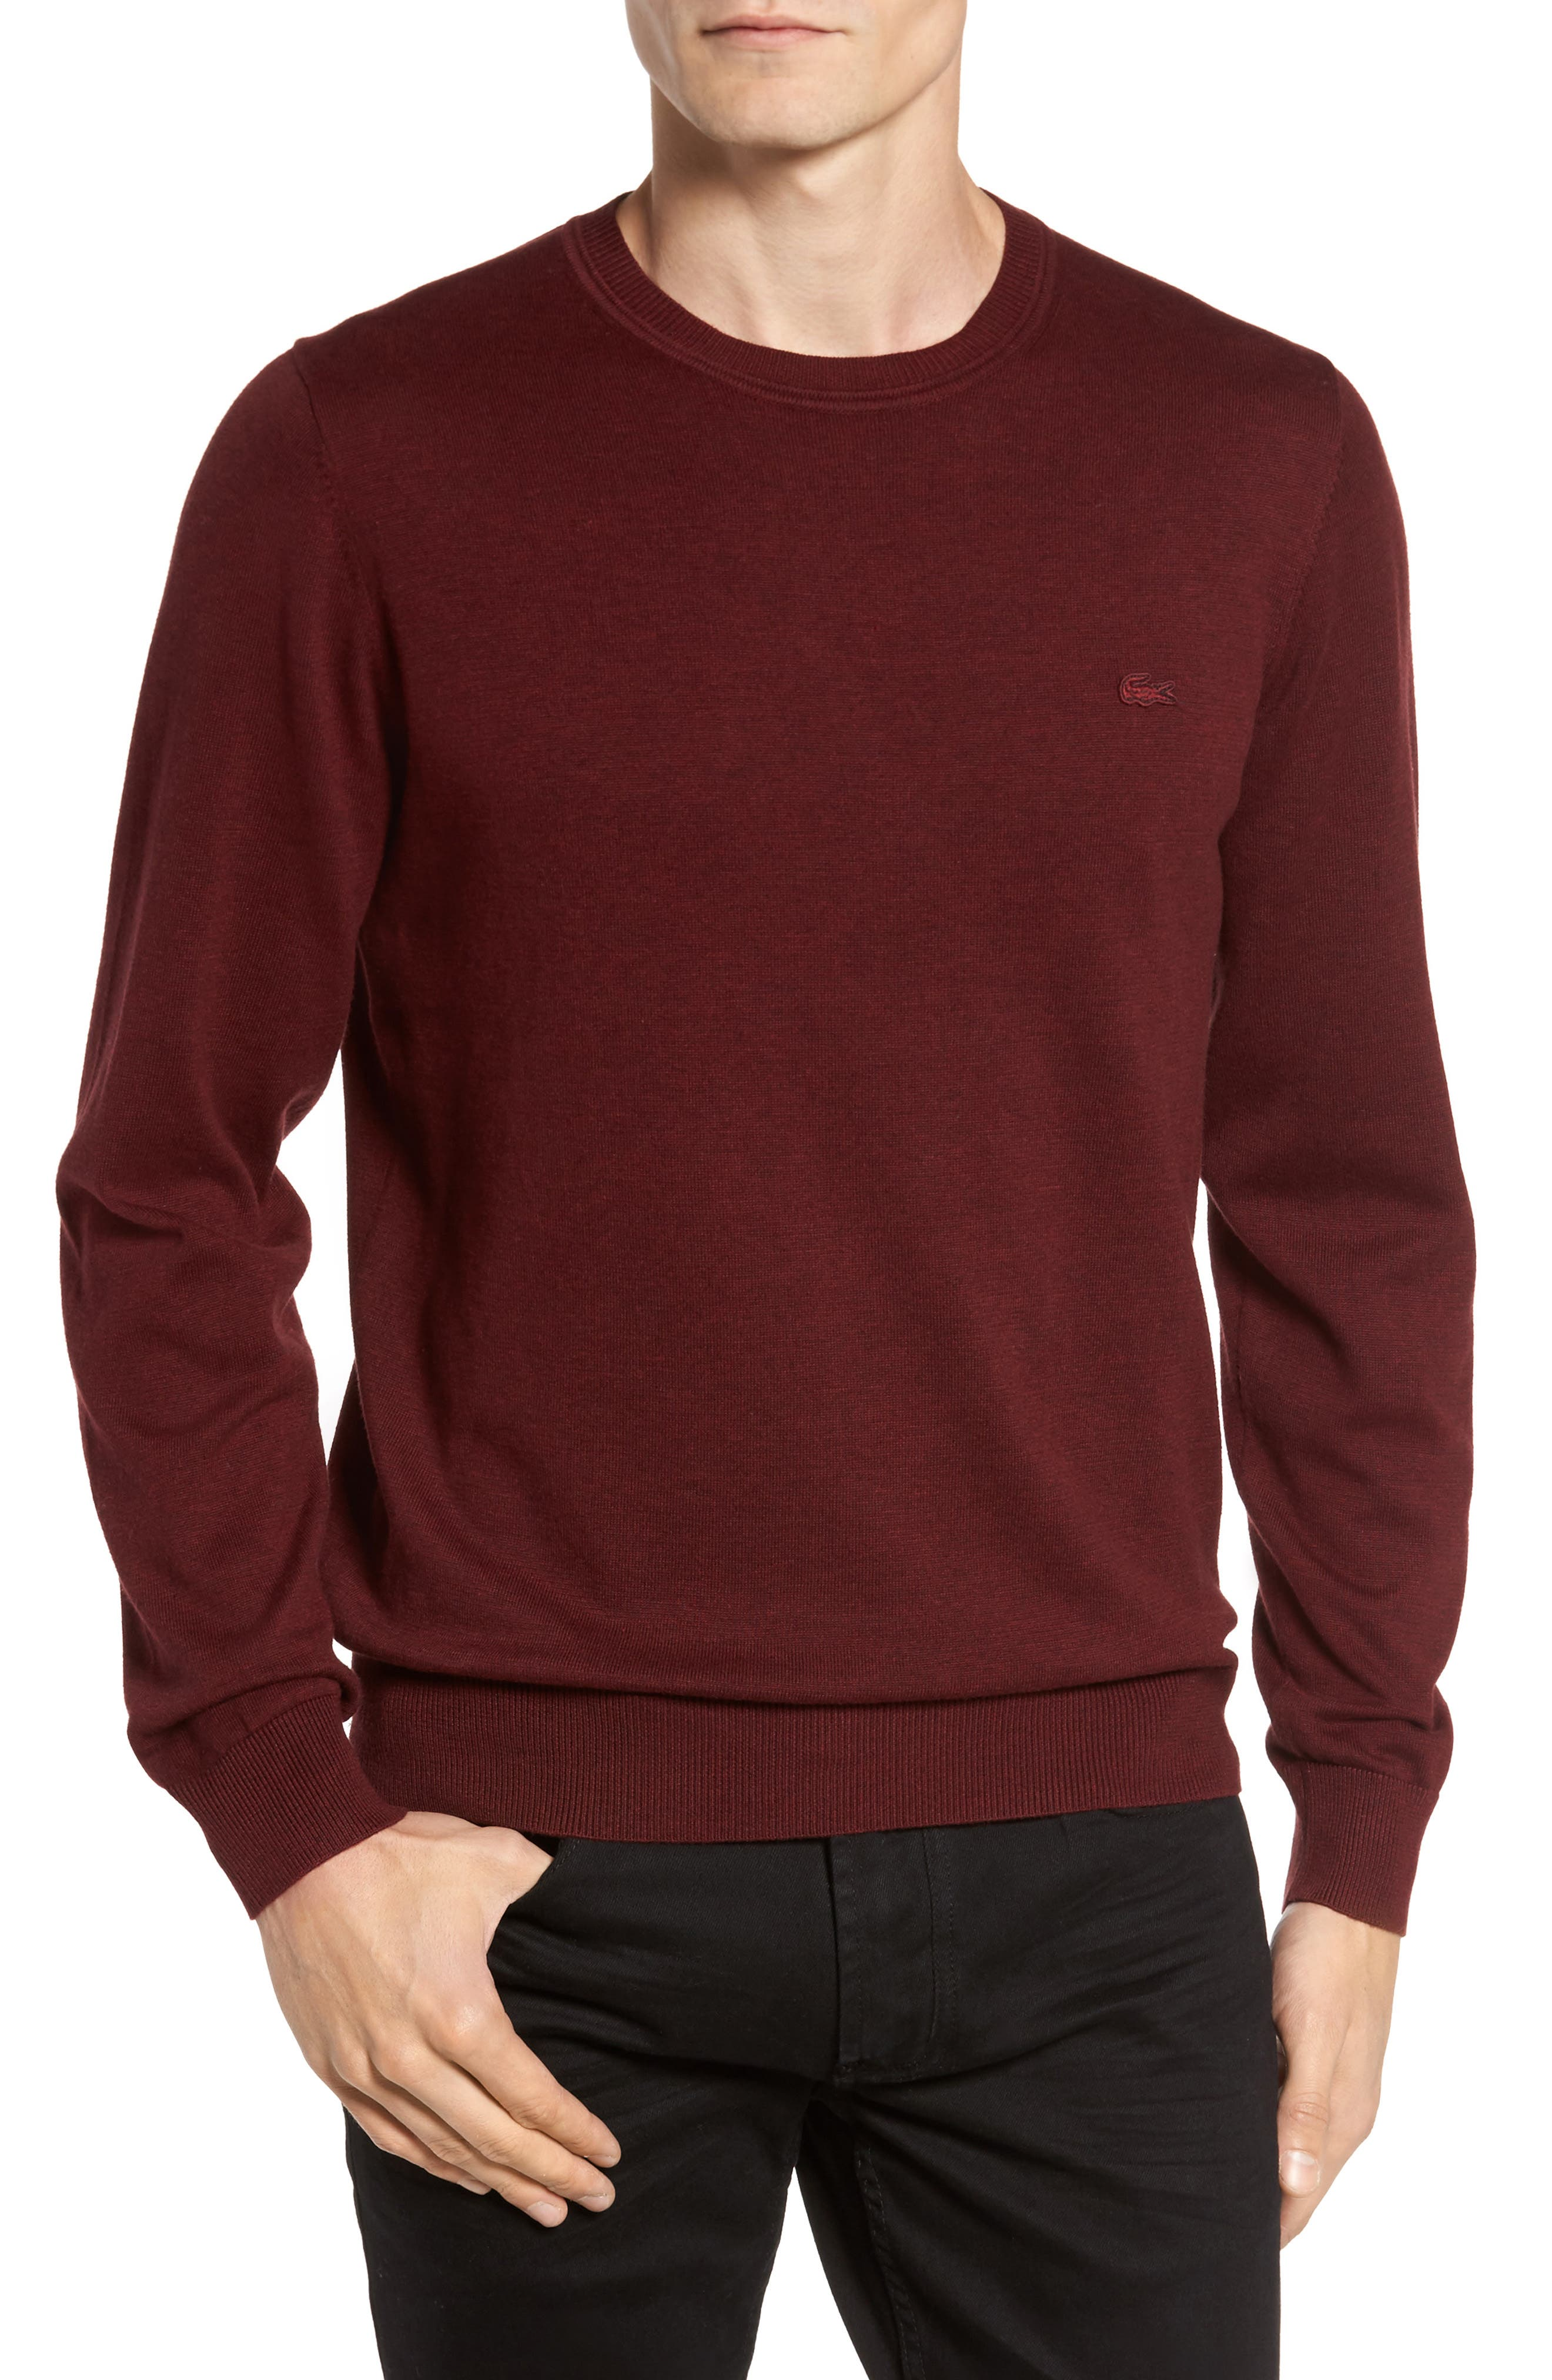 Jersey Knit Crewneck Sweater,                         Main,                         color, Red Basque